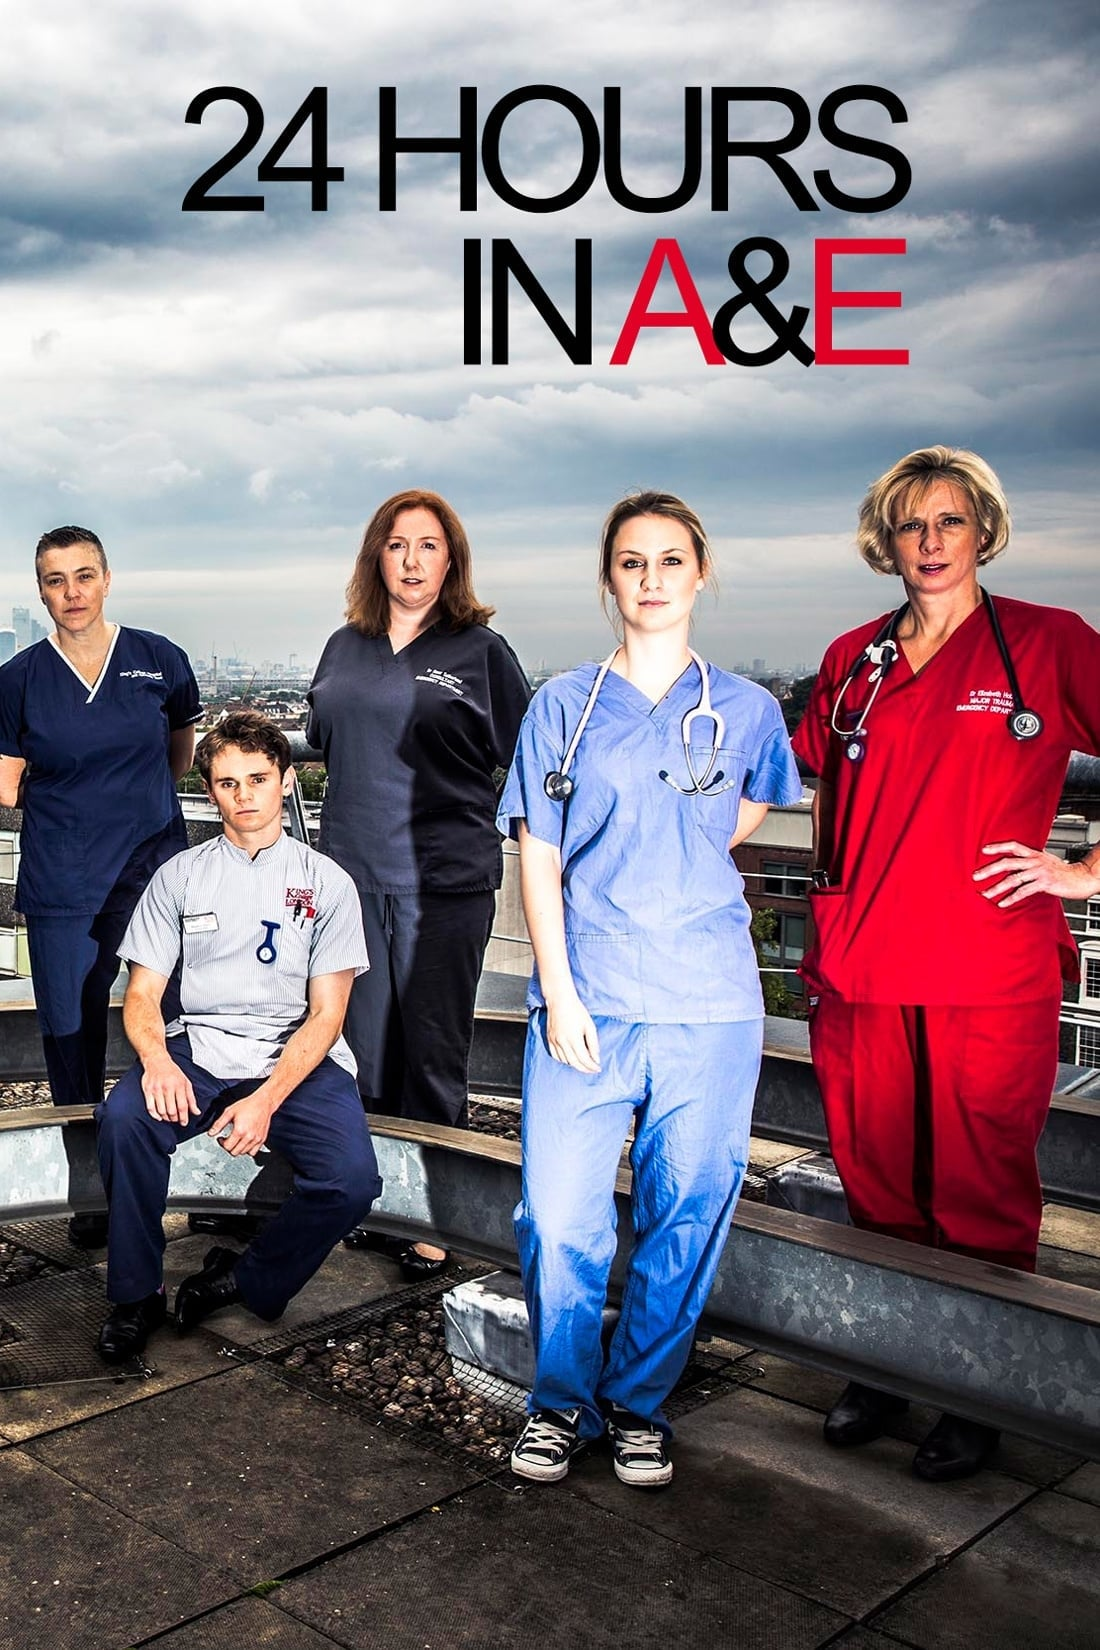 24 Hours in A&E on FREECABLE TV